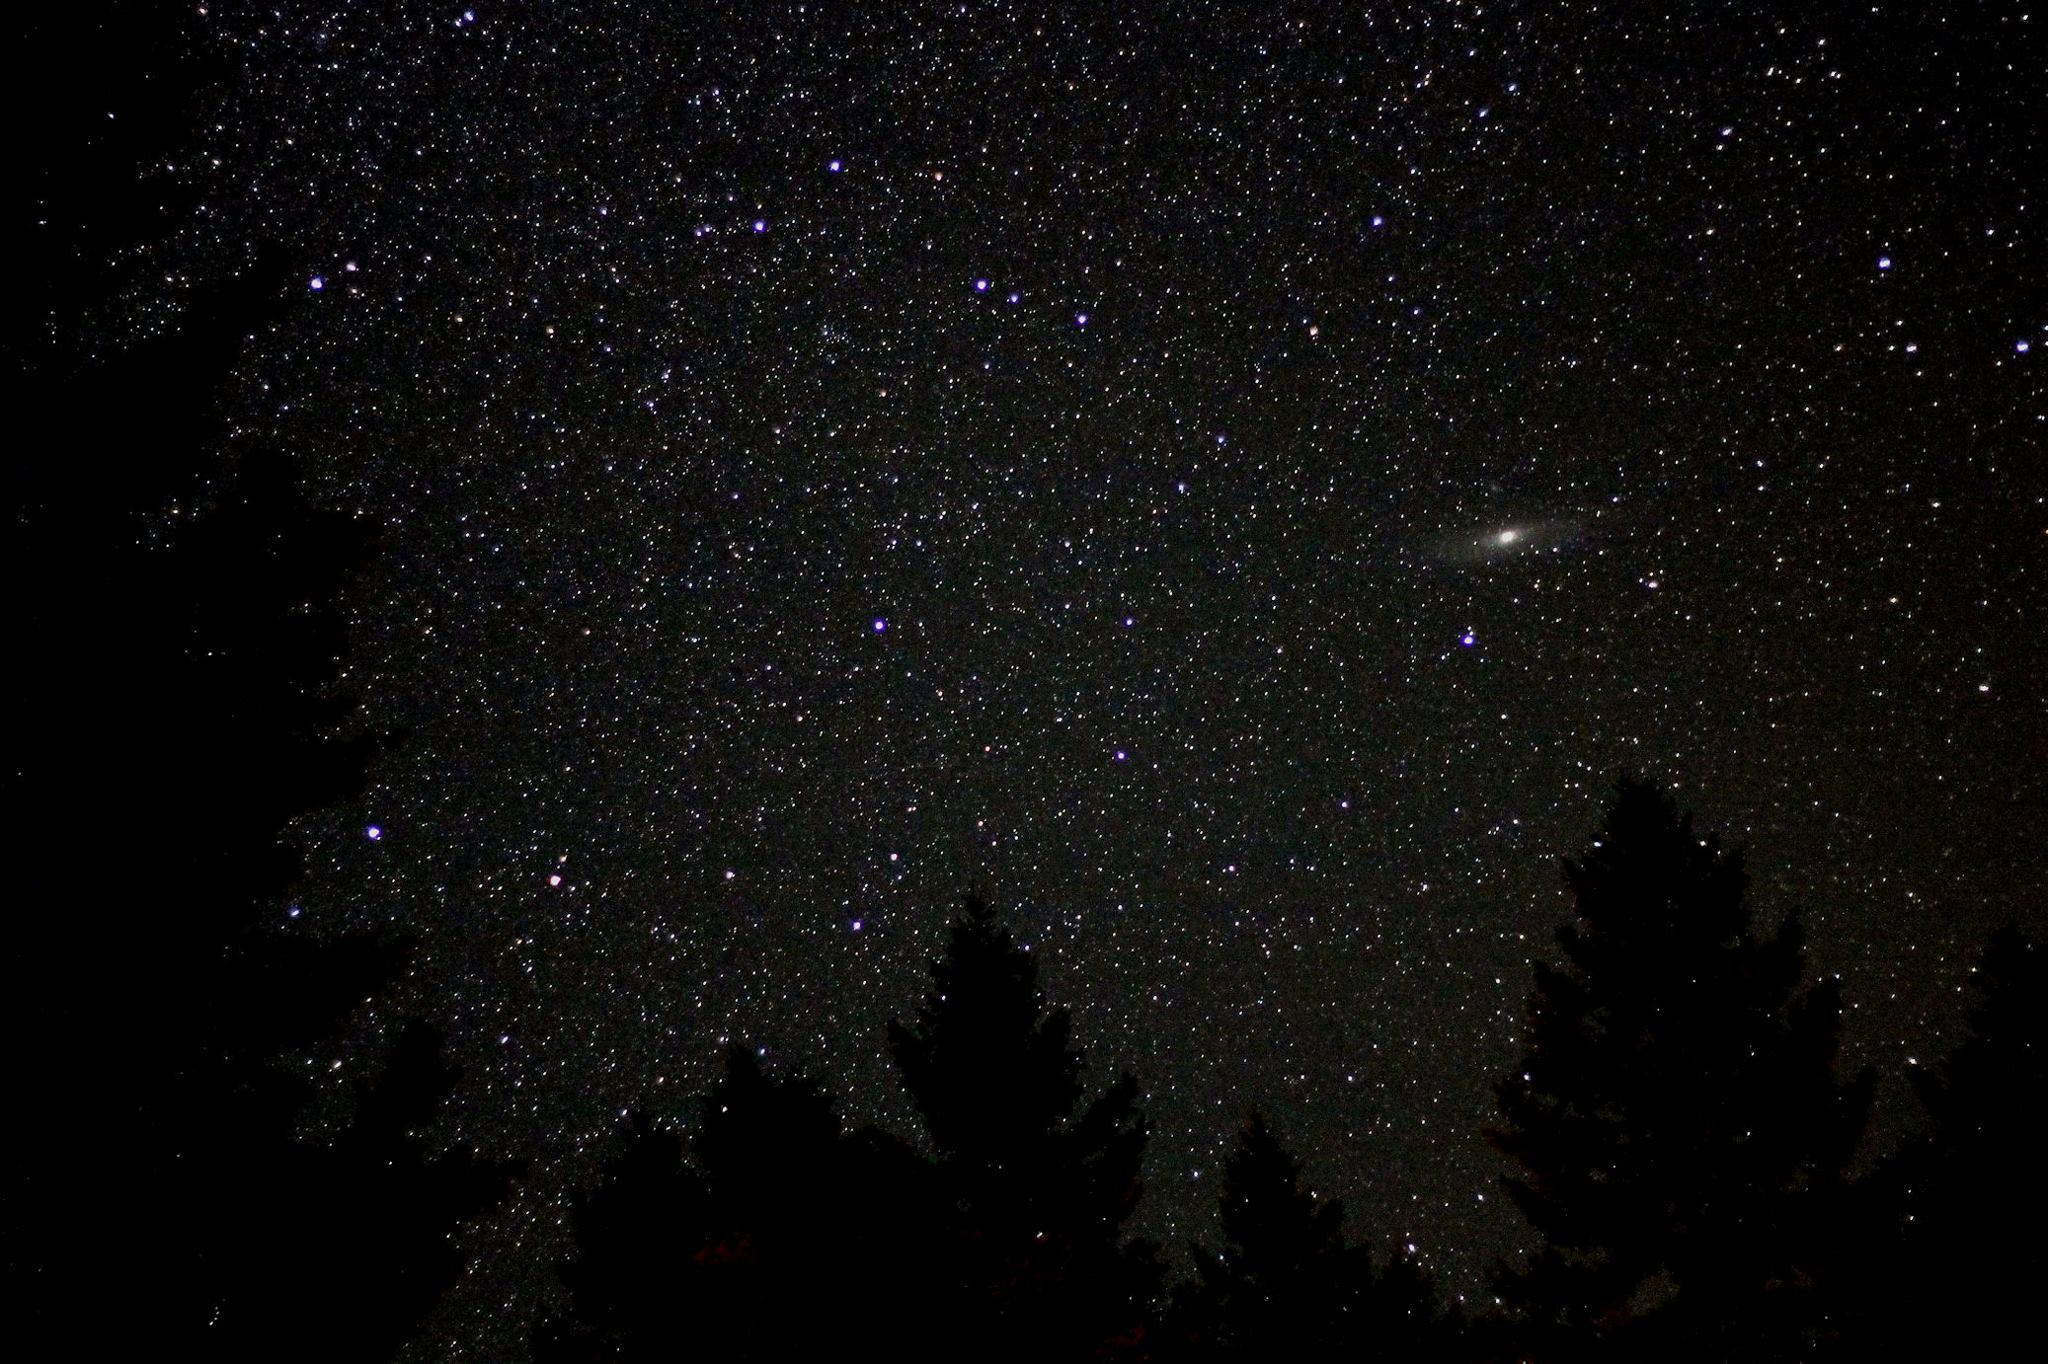 Dense star field above treetops, showing small elongated bright smudge of light with brighter center.